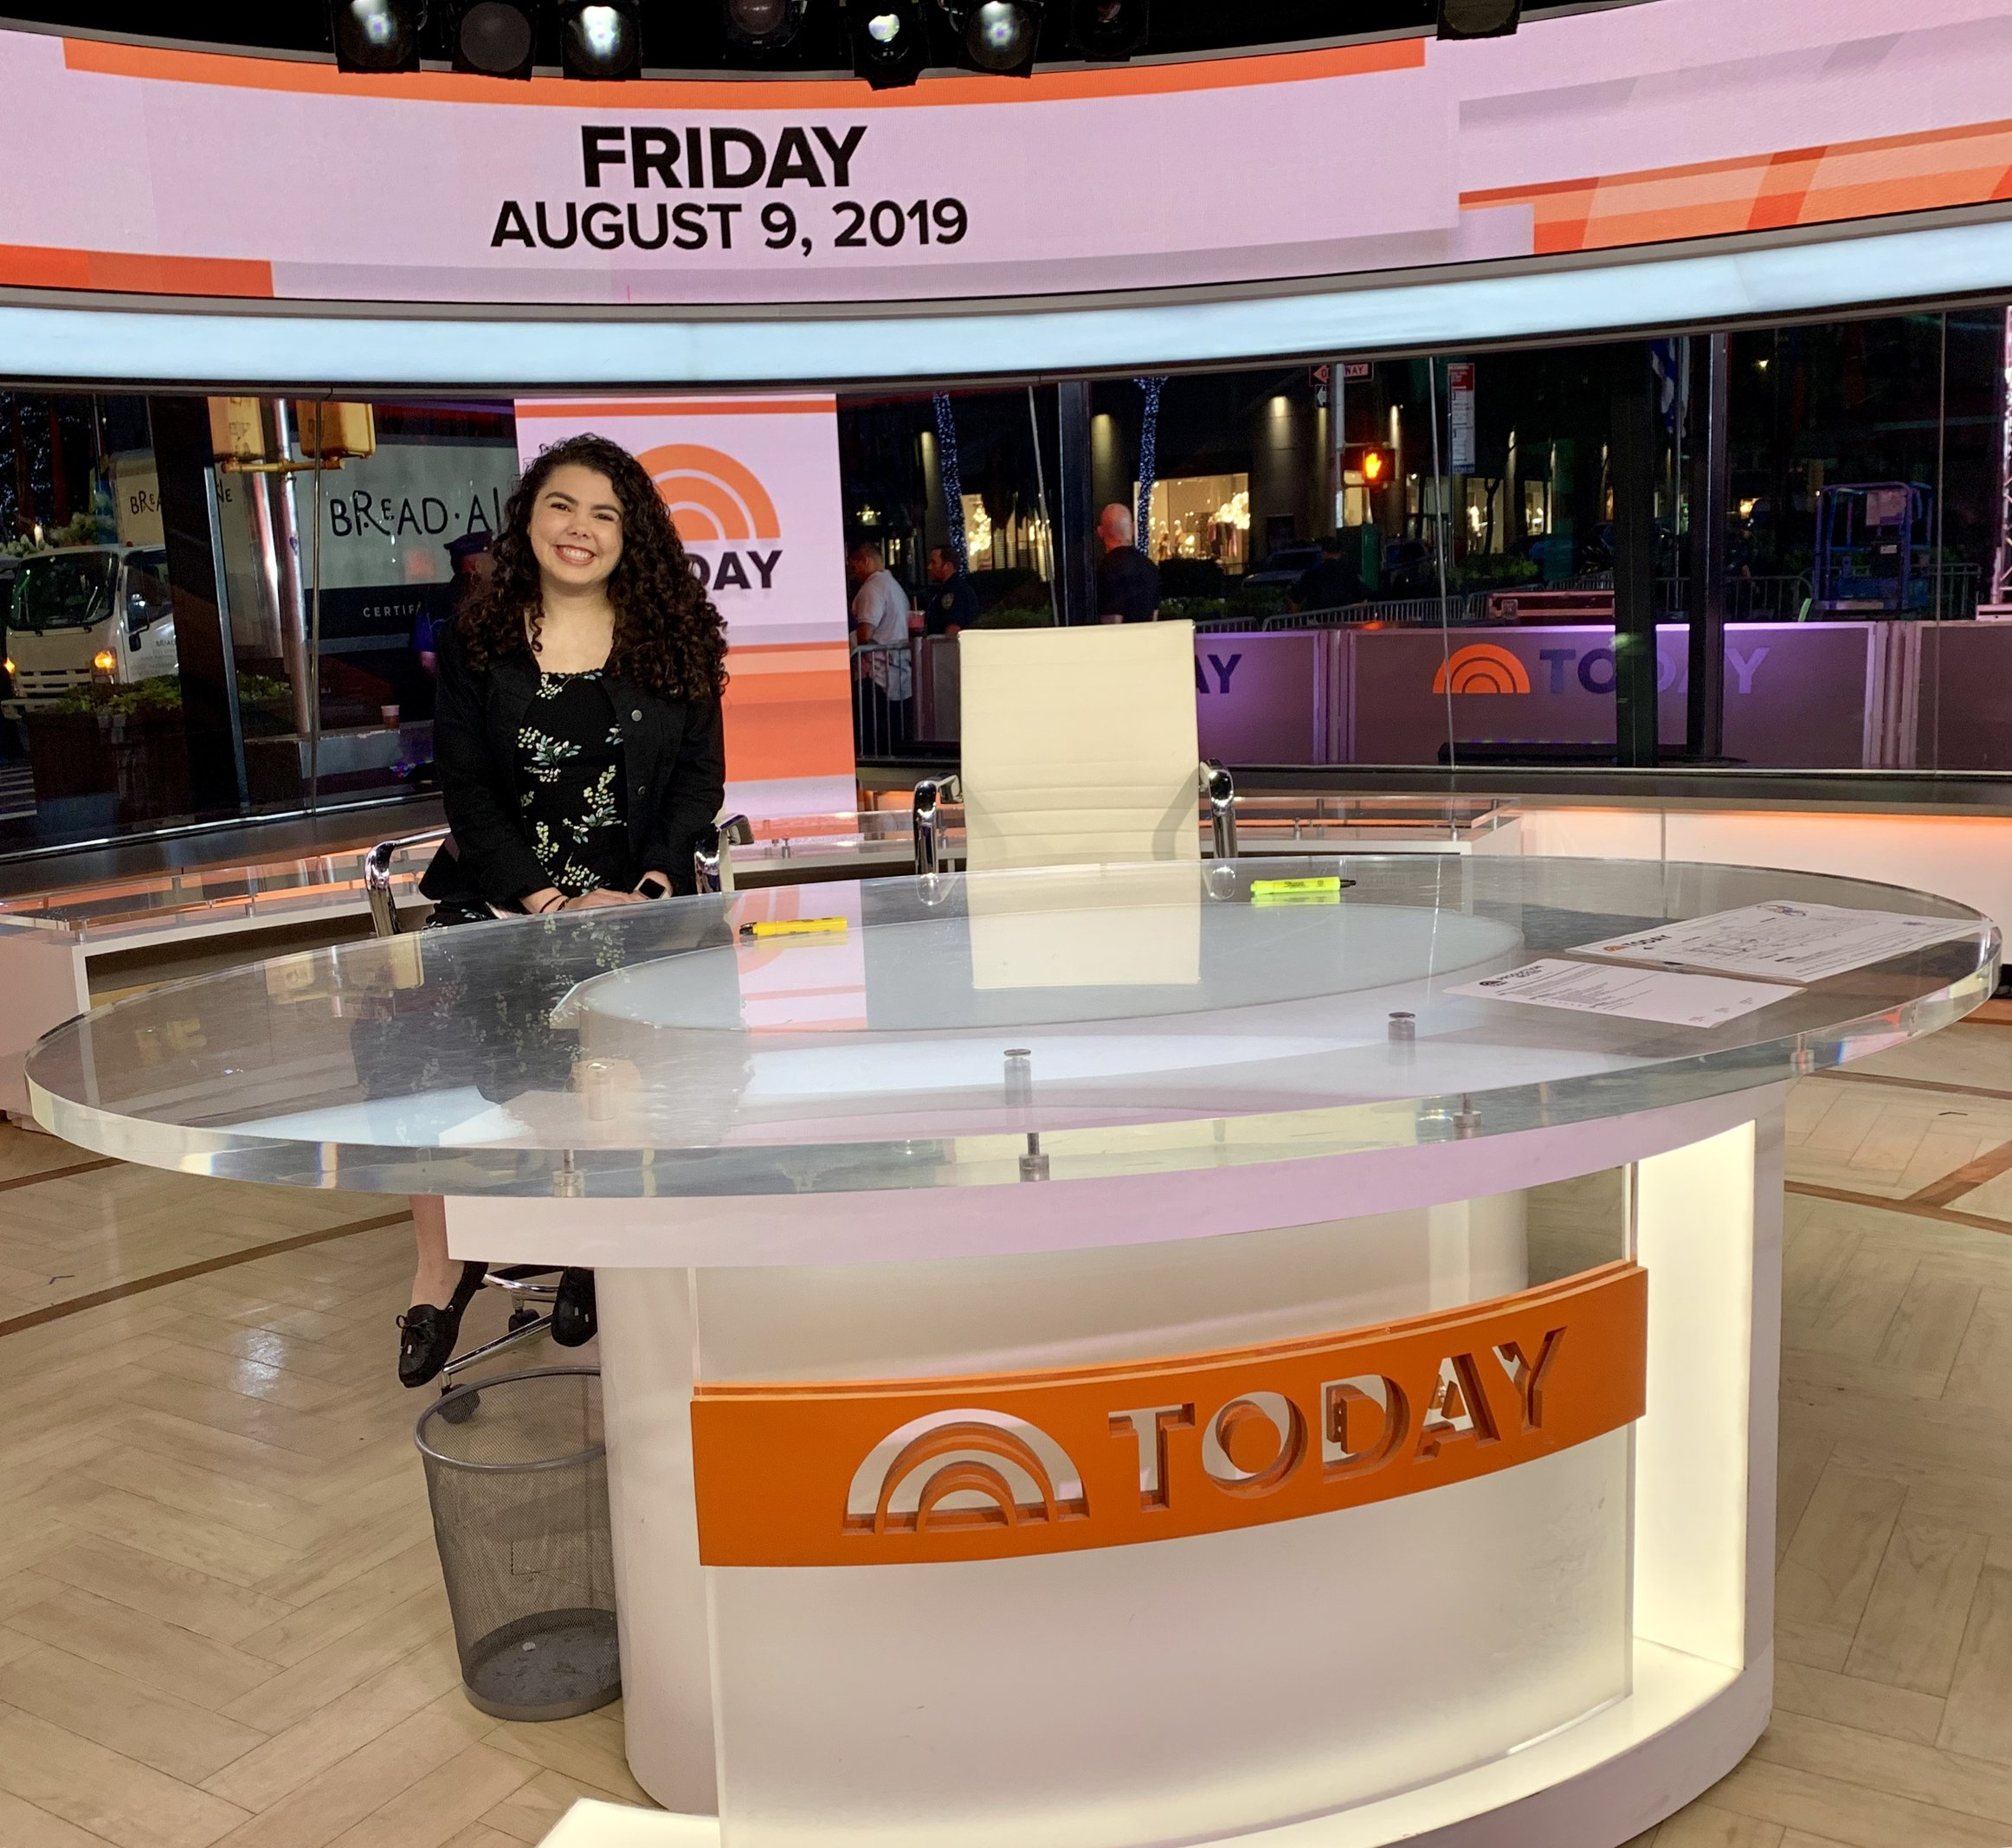 OHIO junior wins $10,000 scholarship, completes Today Show internship through Native American Journalists Association